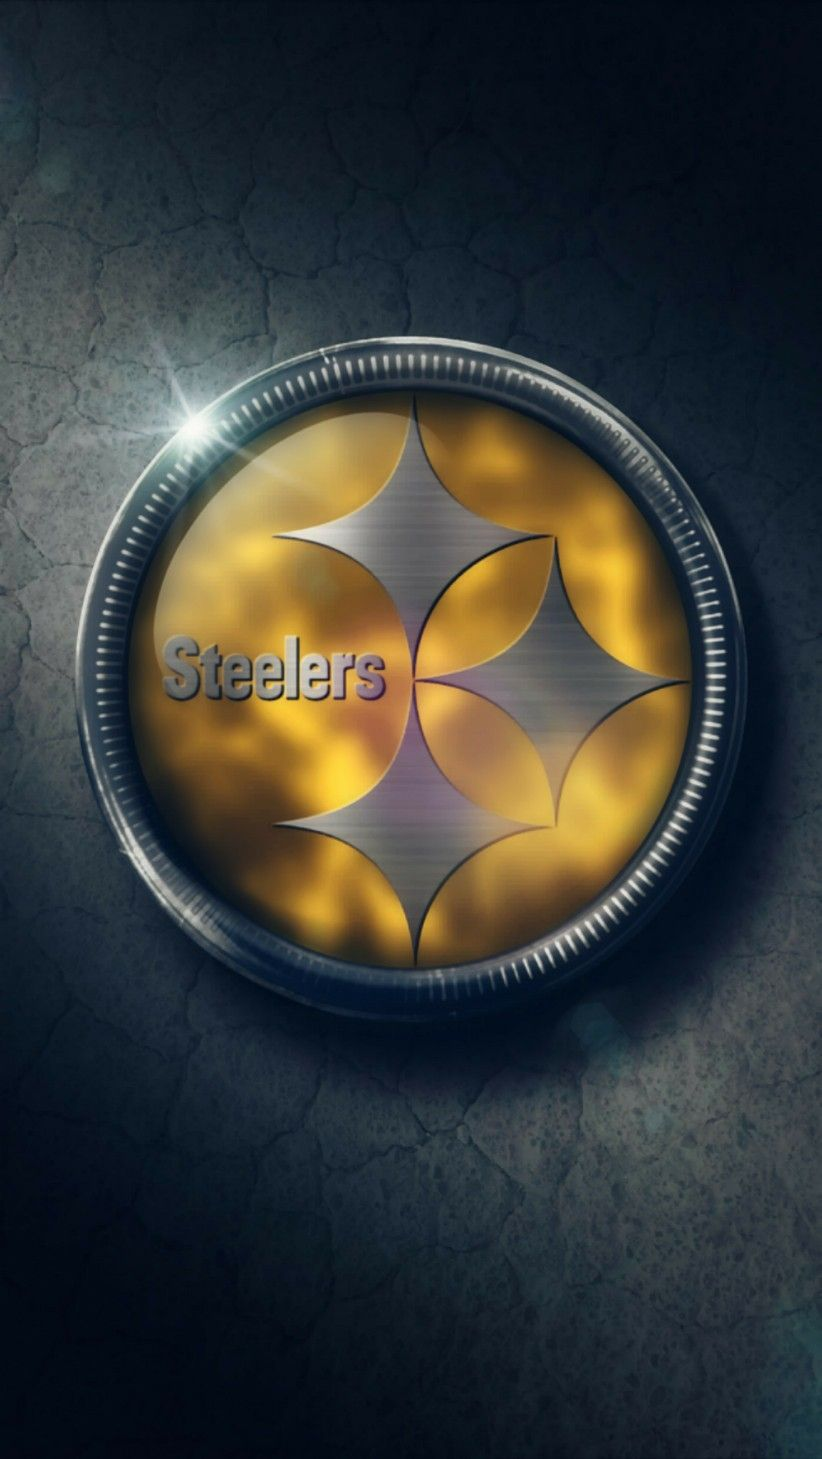 Pin By Stephanie Hairston On Pittsburgh Steelers Images Pittsburgh Steelers Logo Pittsburgh Steelers Wallpaper Pittsburgh Steelers